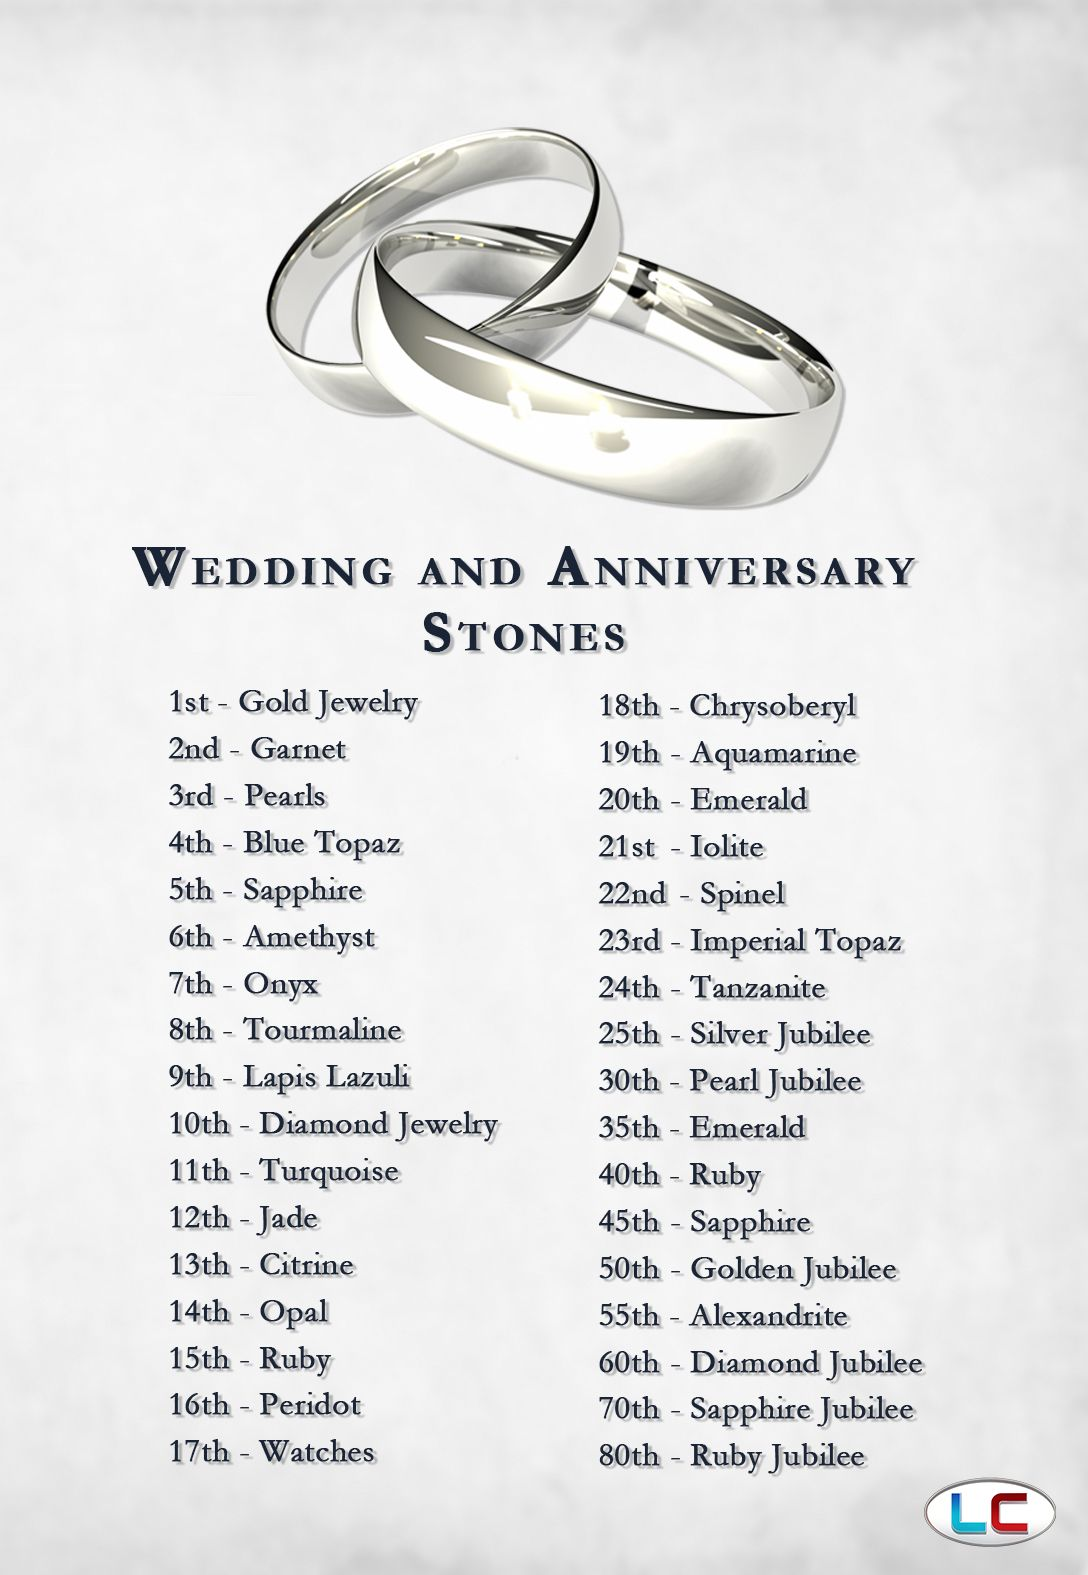 Wedding And Anniversary Gemstones 10th Is Diamonds Yeah Gonna Have To Inform